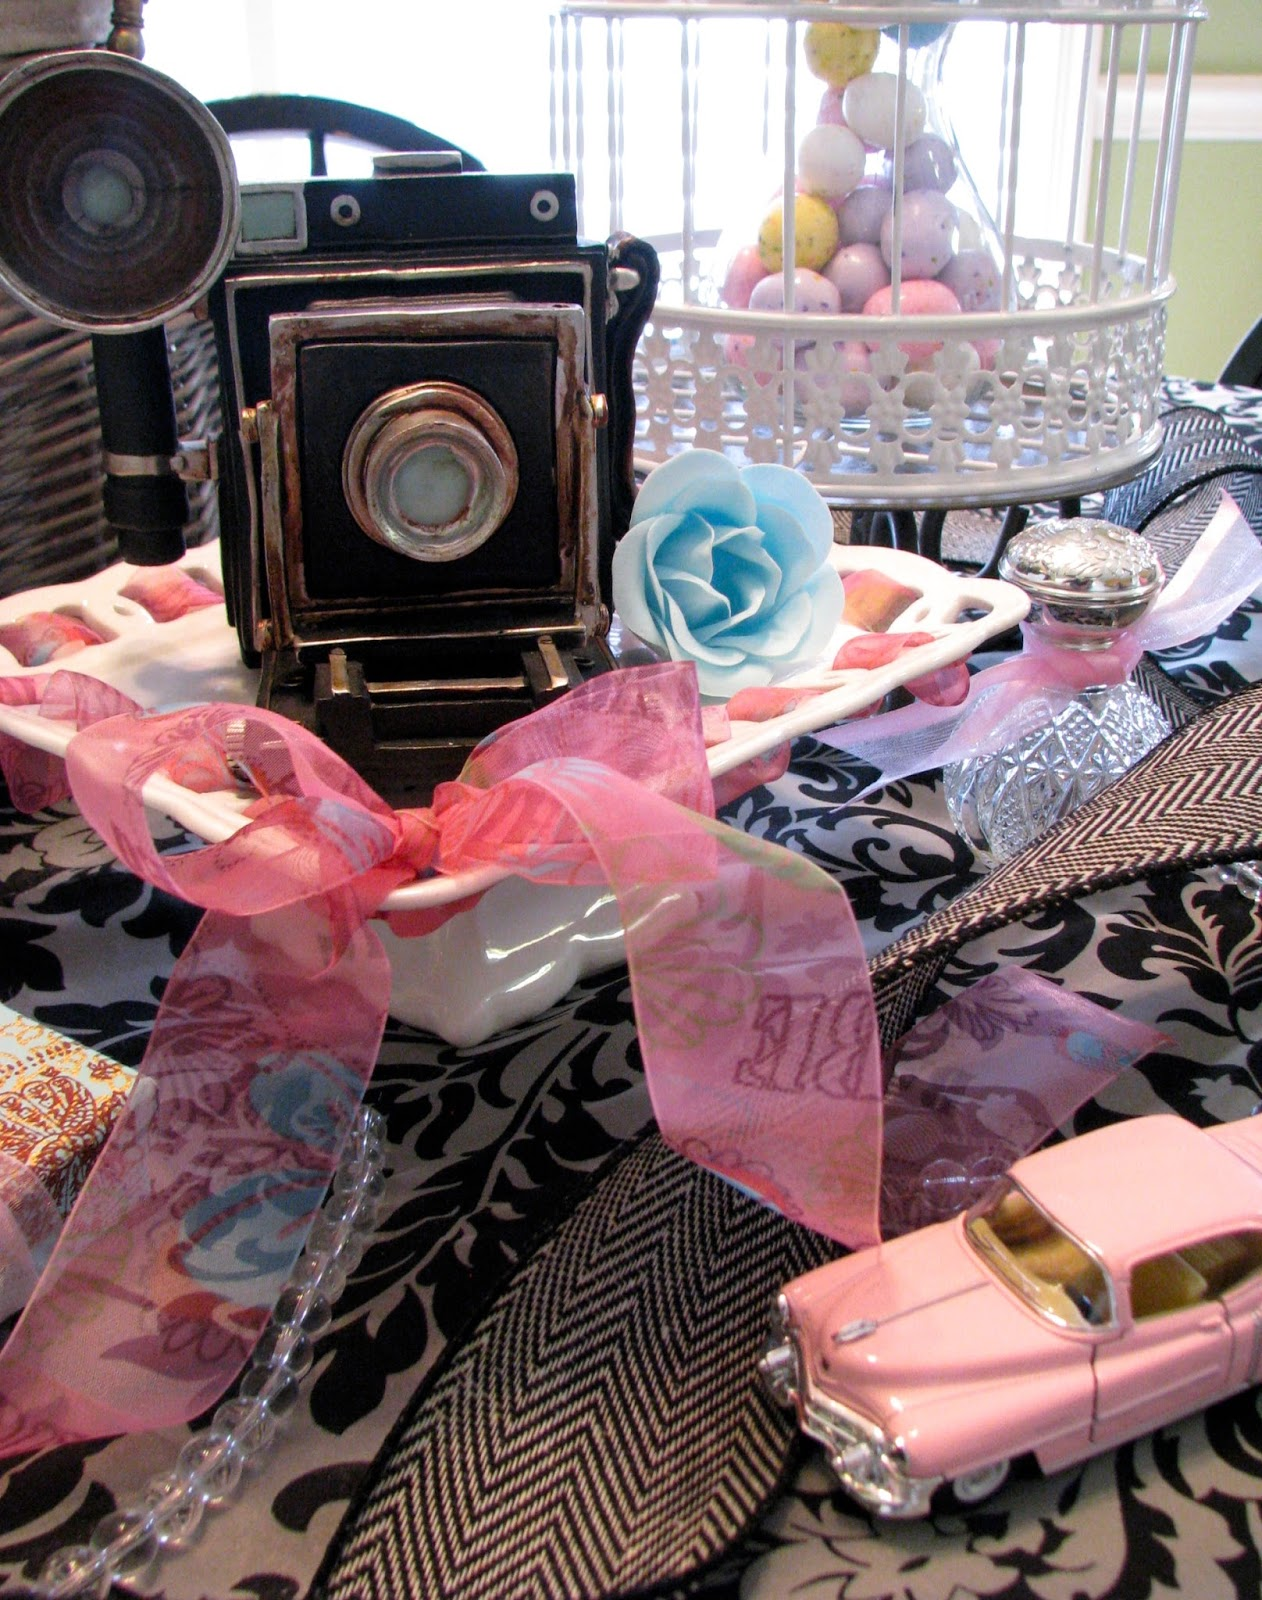 Vintage camera, vintage model car, and birdhouse decorate the vintage birthday party.